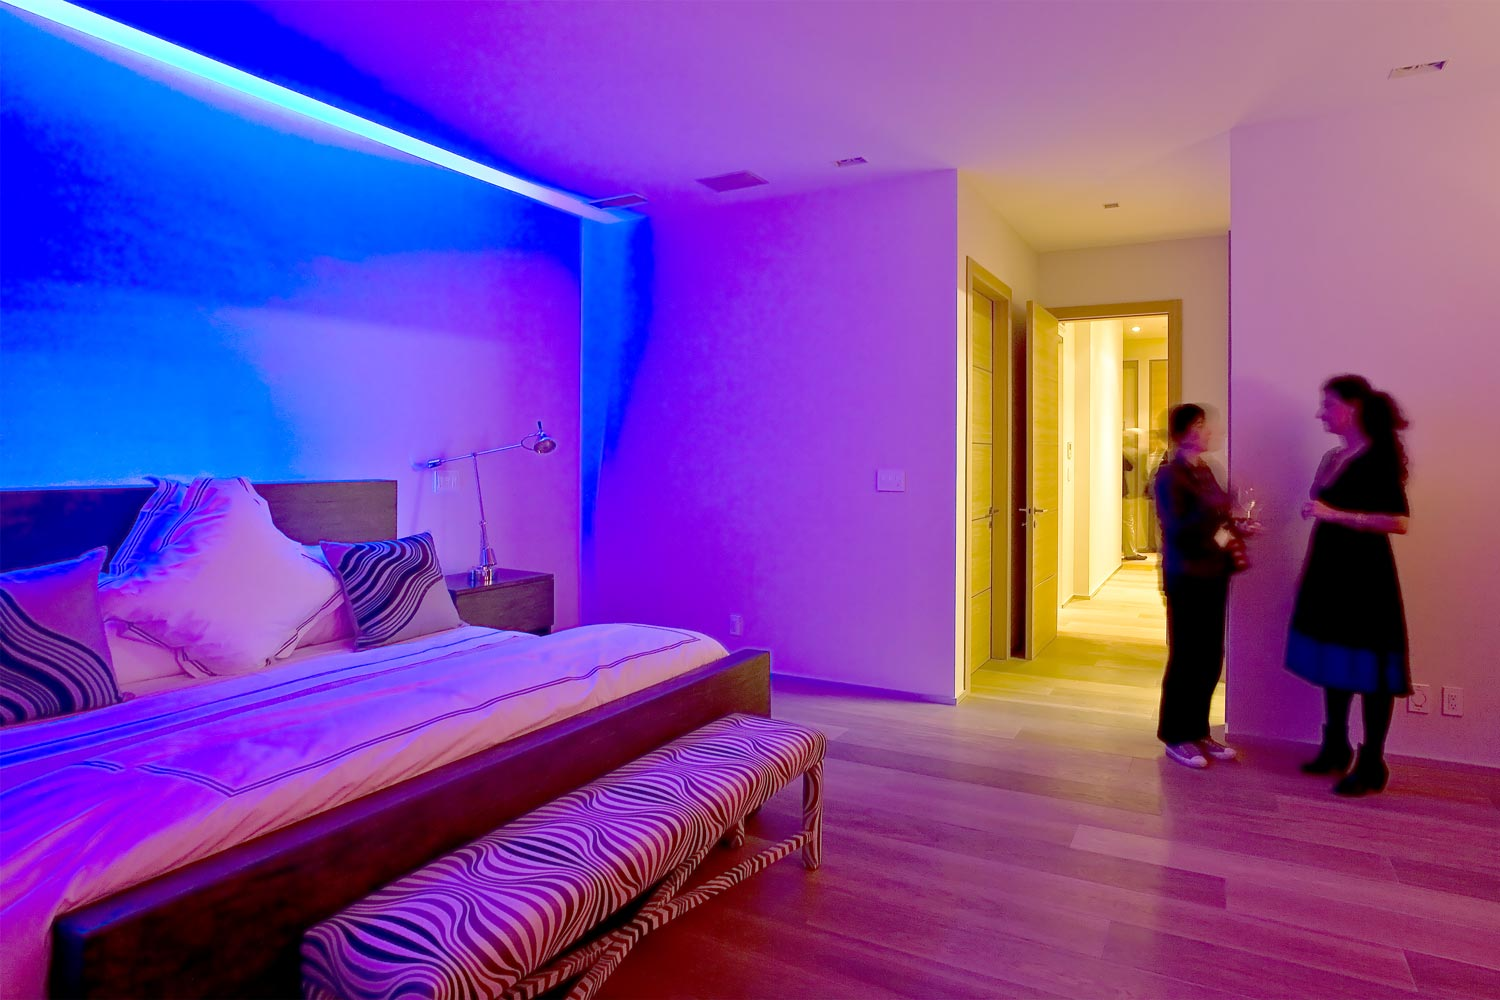 Lighting of this Tribeca duplex penthouse can be controlled through the home automation center